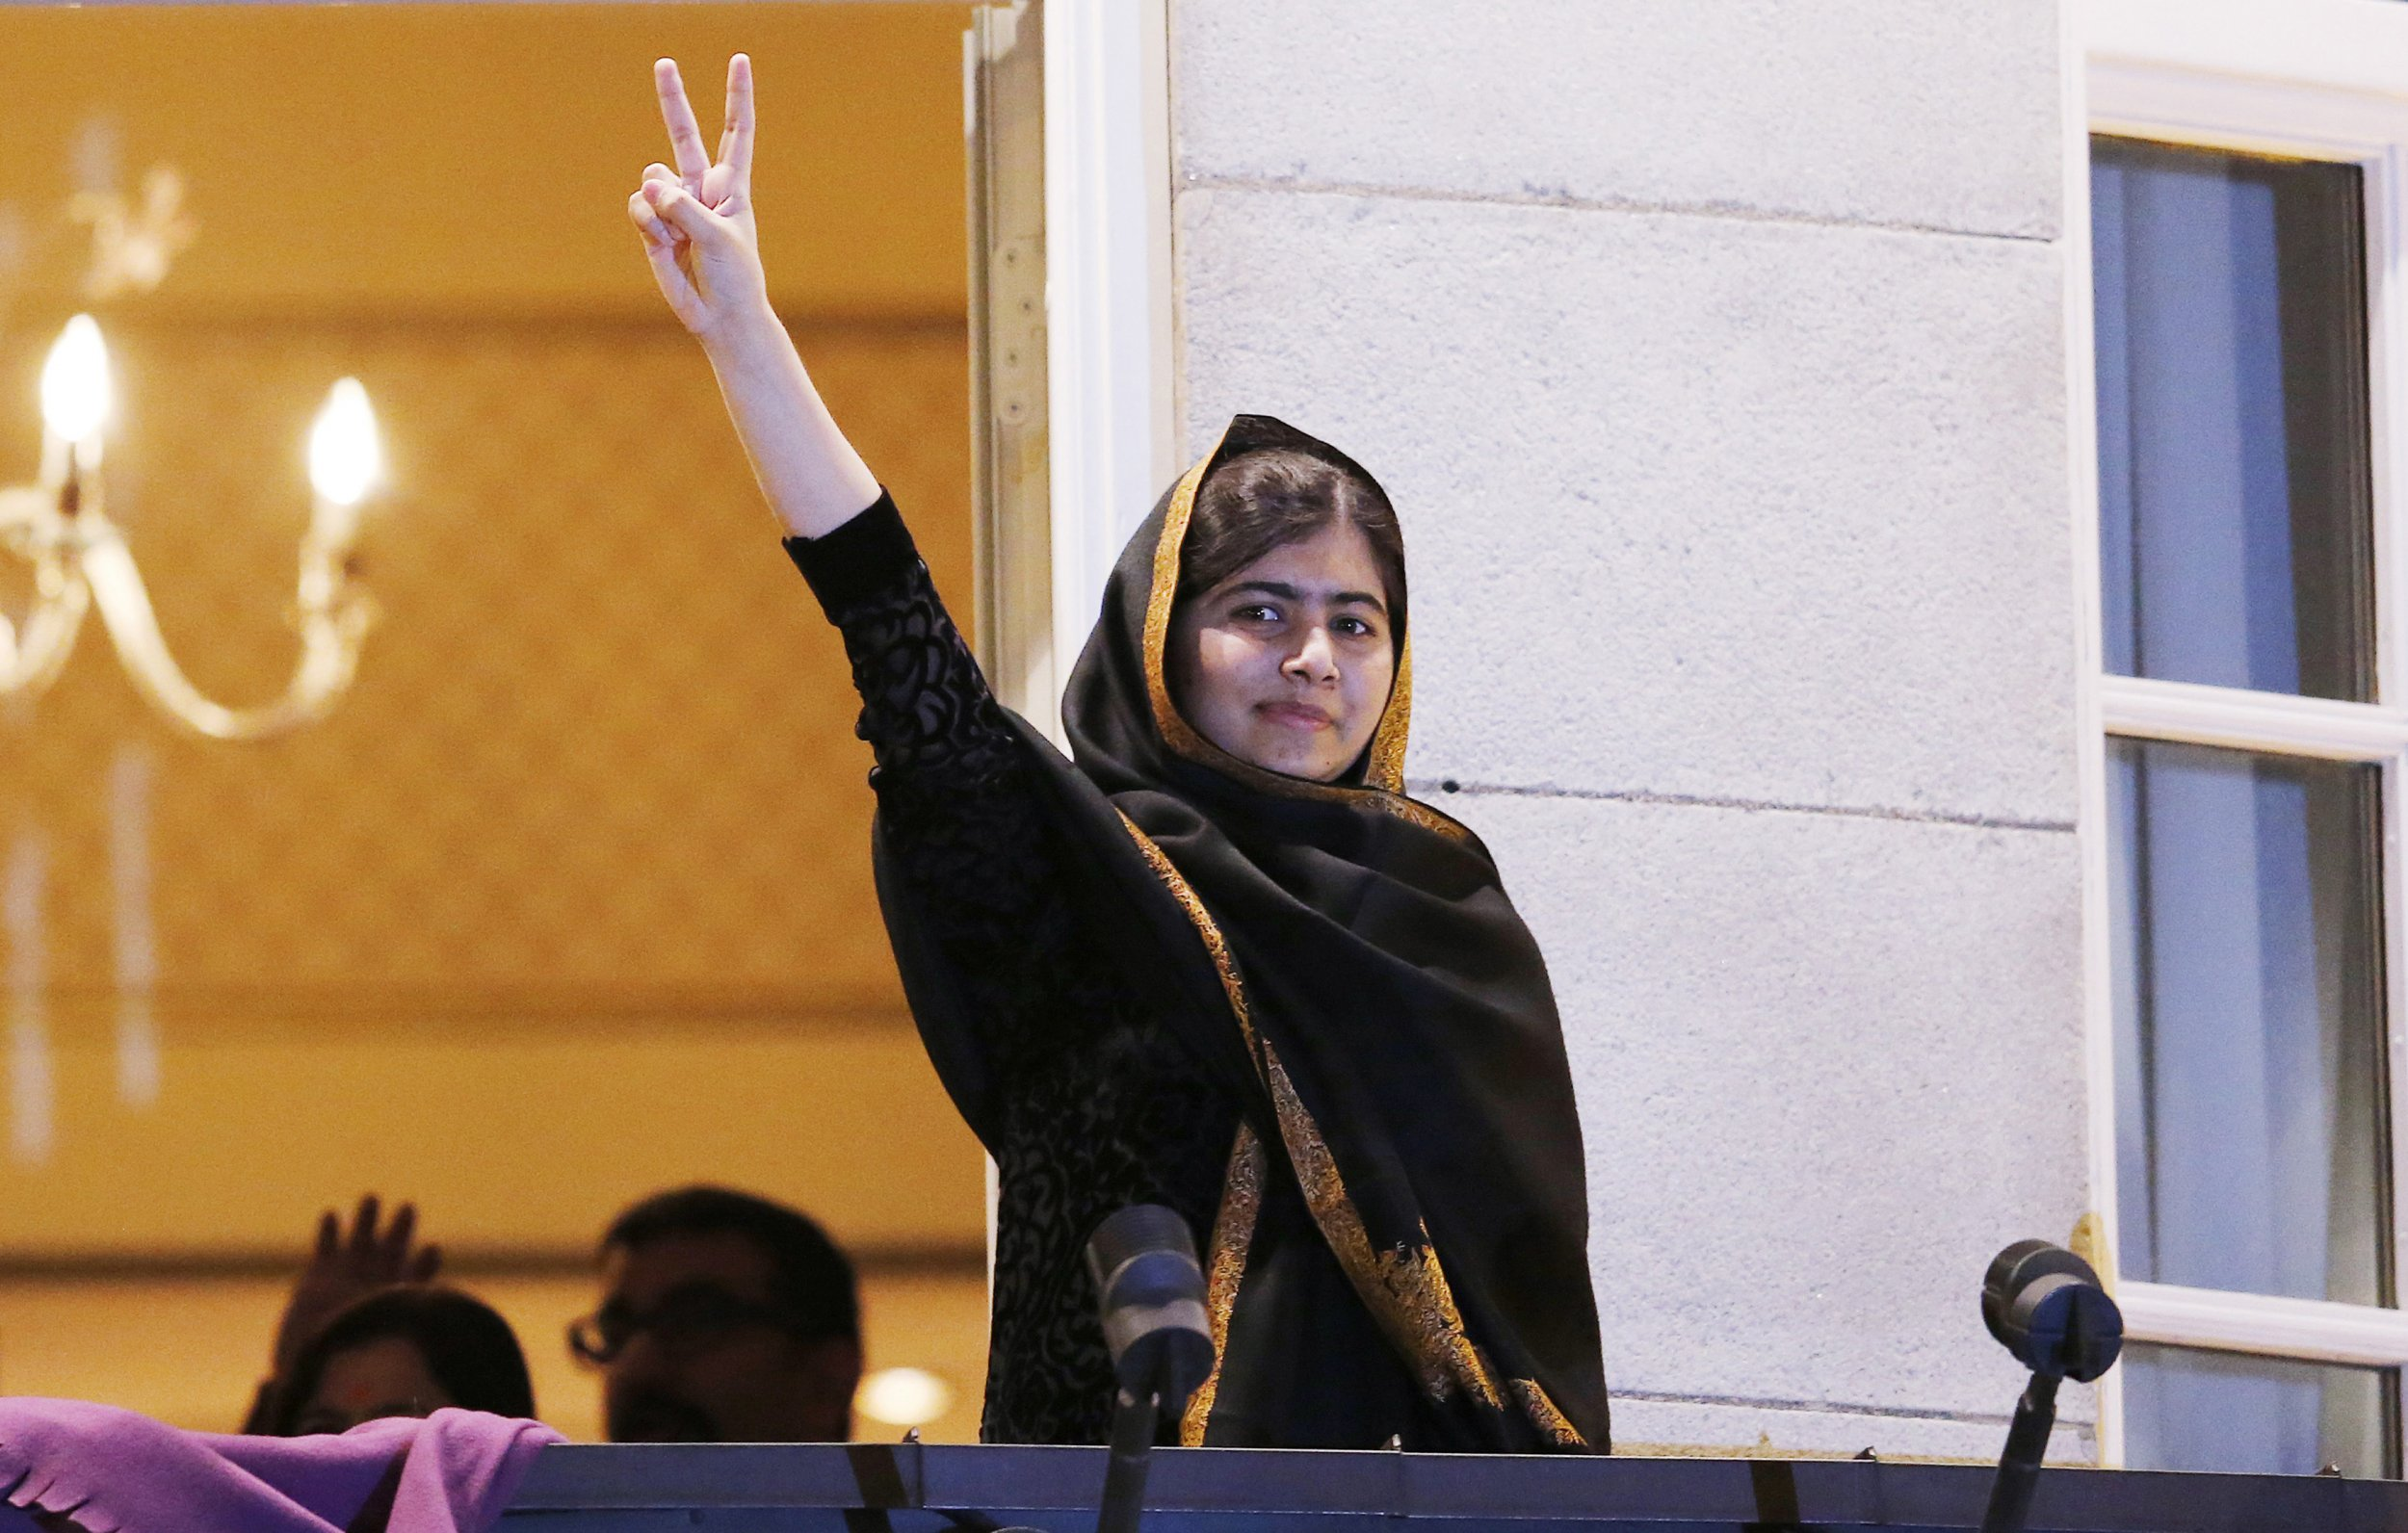 Malala Yousafzai Leads Global Condemnation of Taliban School Attack